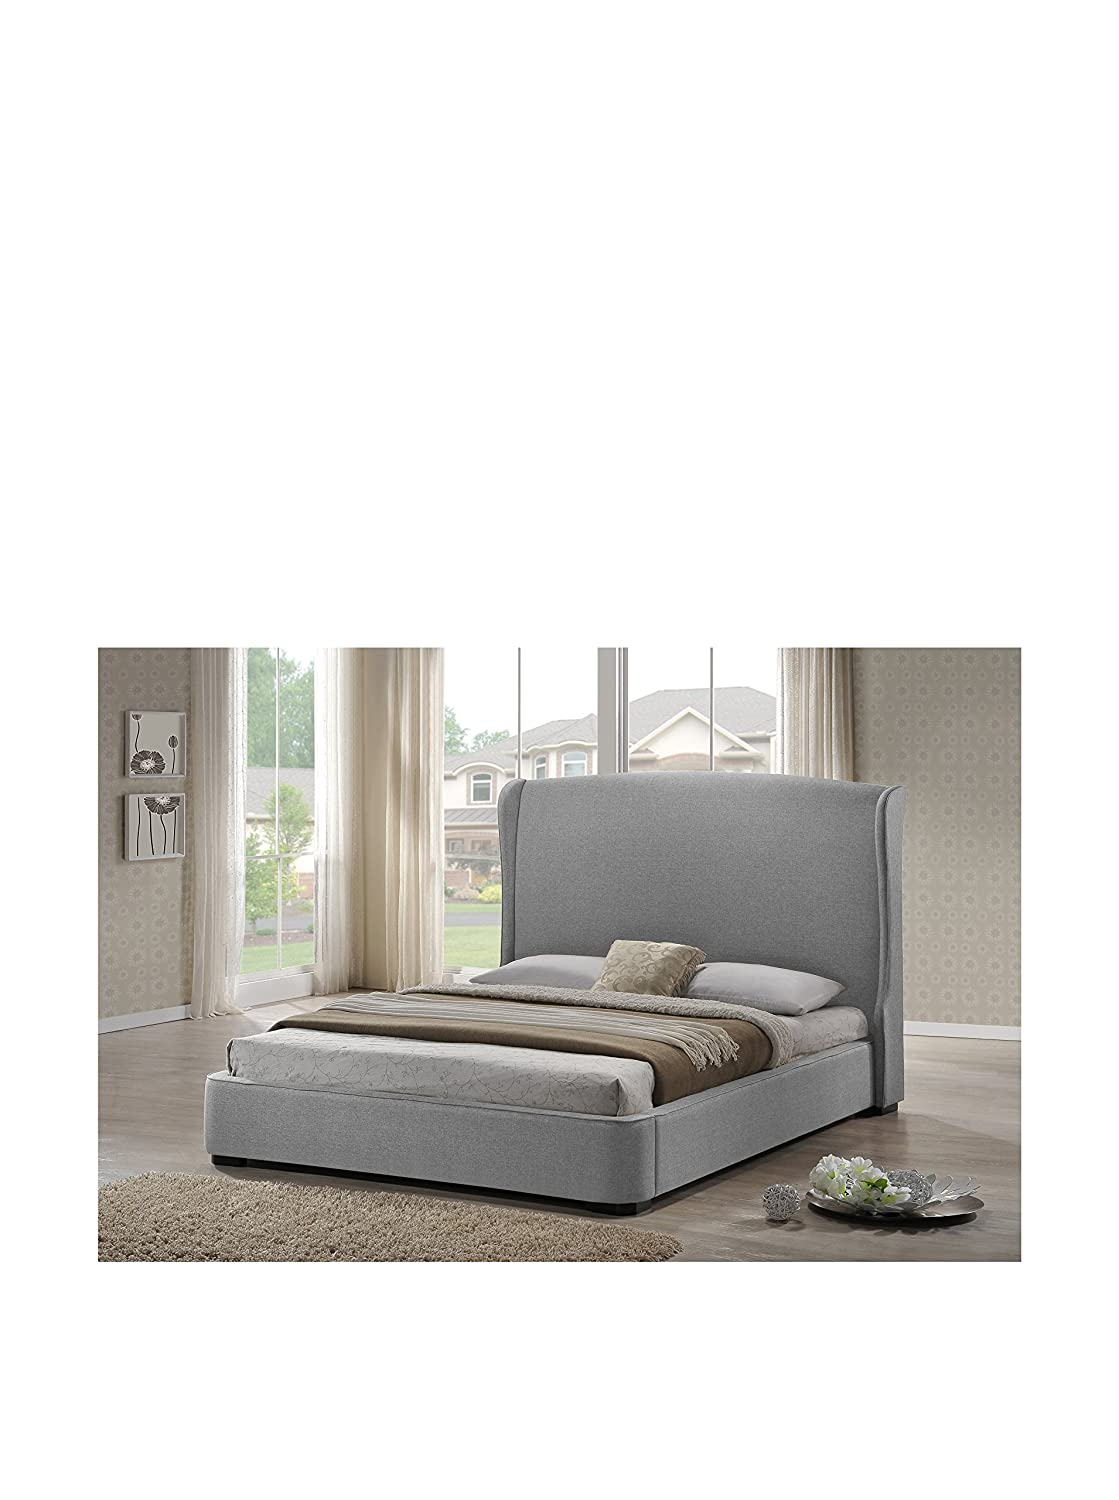 amazoncom baxton studio sheila linen modern bed with upholstered  - amazoncom baxton studio sheila linen modern bed with upholstered headboardking gray kitchen  dining